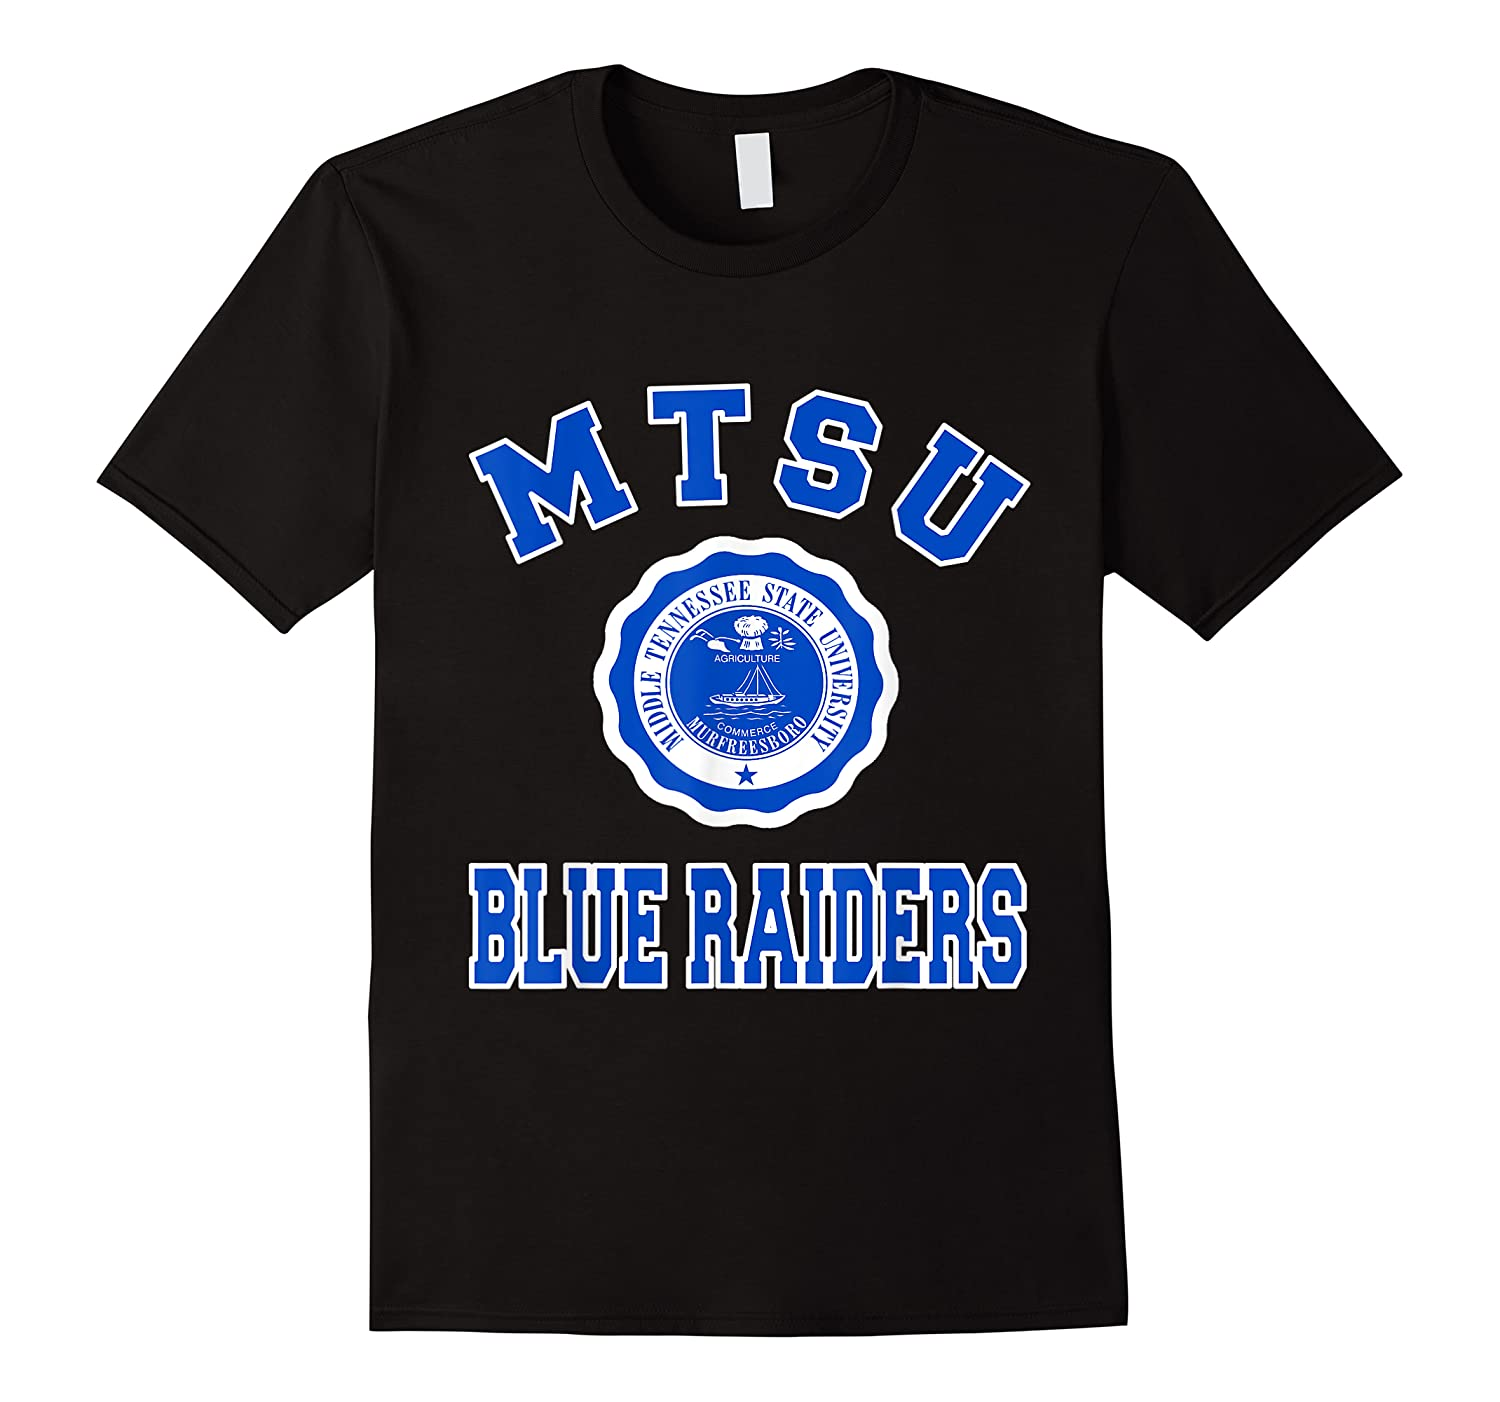 Middle Tennessee State 1911 University Apparel T Shirt